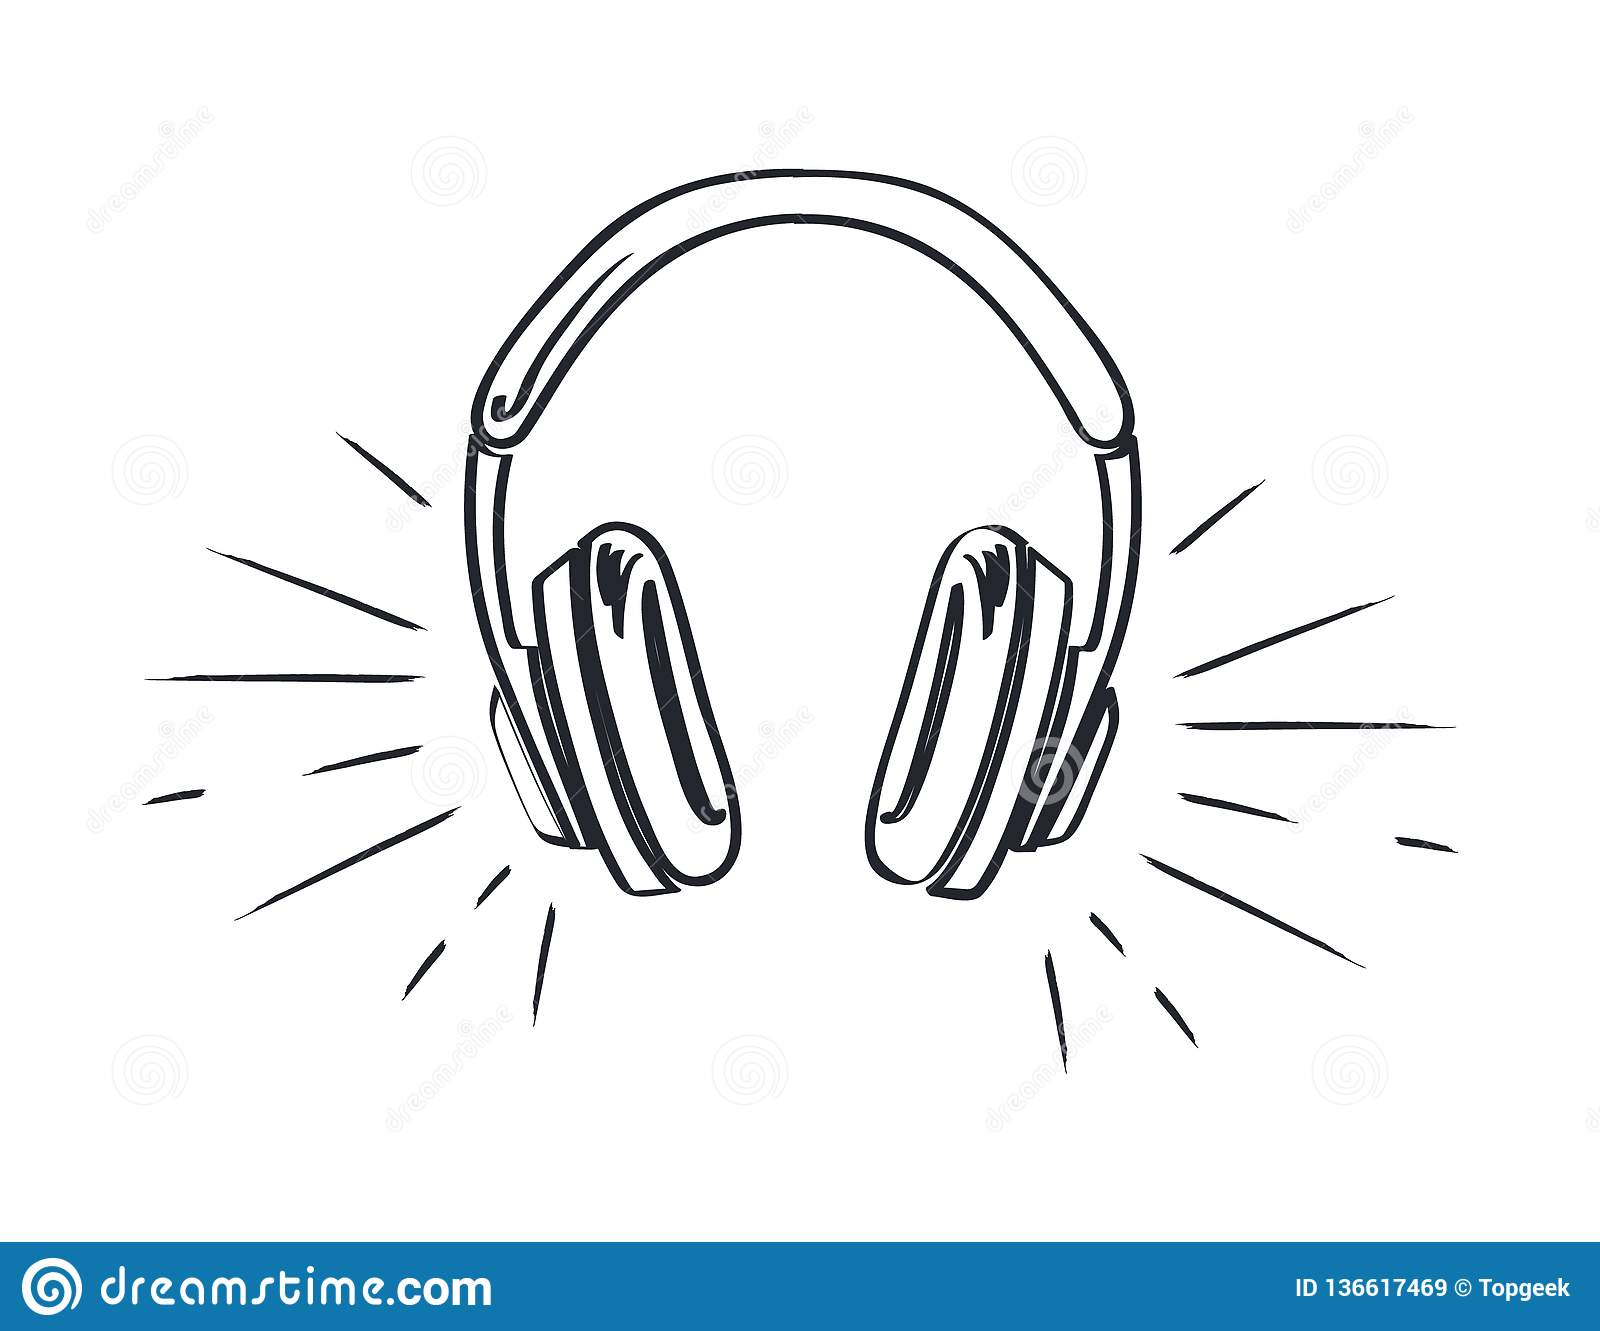 Headphones headset with music playing loud monochrome sketch outline vector line art colorless device listen to sounds stereo audio accessory with cable